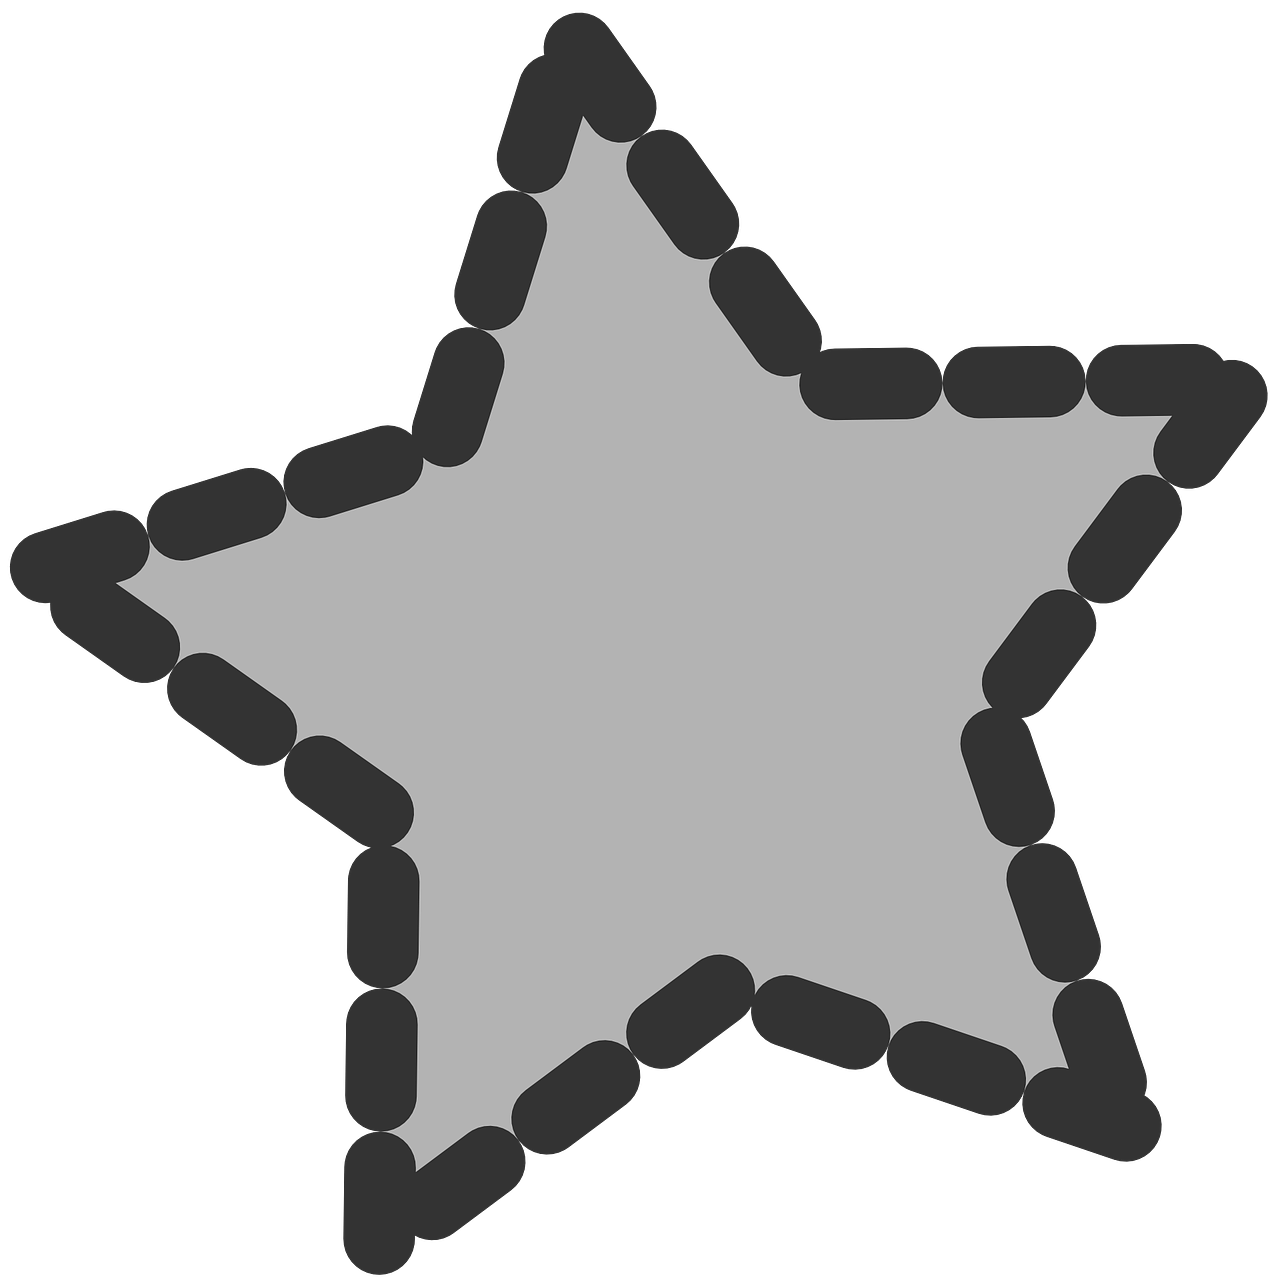 star,shape,dotted,outline,shaded,fill,grey,free vector graphics,free pictures, free photos, free images, royalty free, free illustrations, public domain